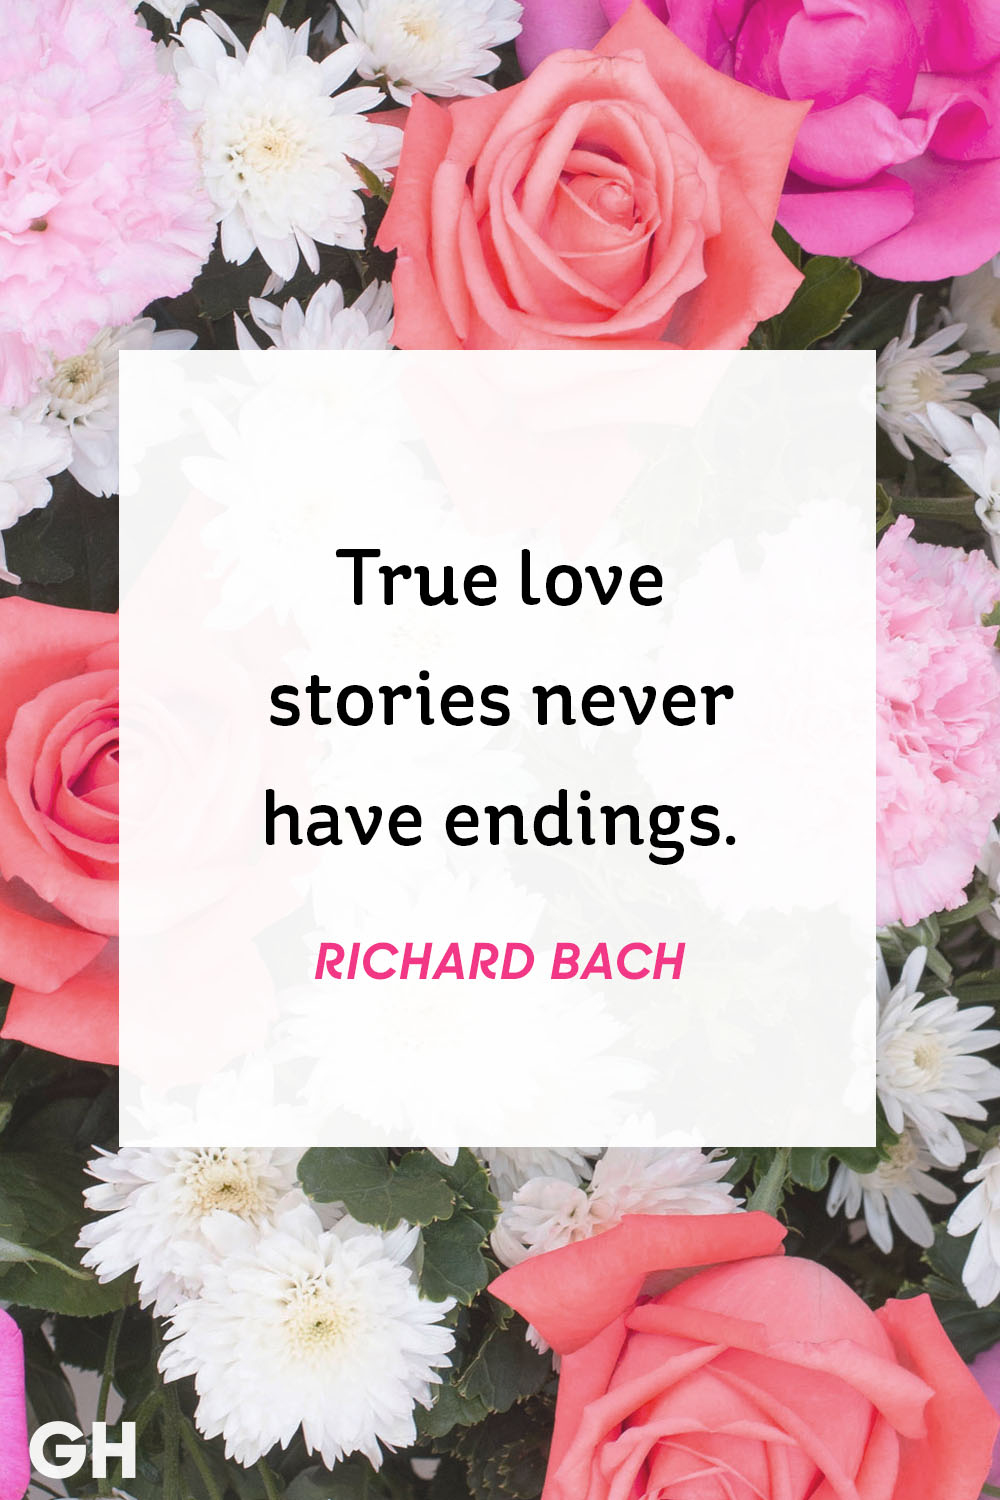 Quotes On Flowers And Love 25 Best Love Quotes Of All Time  Cute Famous Sayings About Love